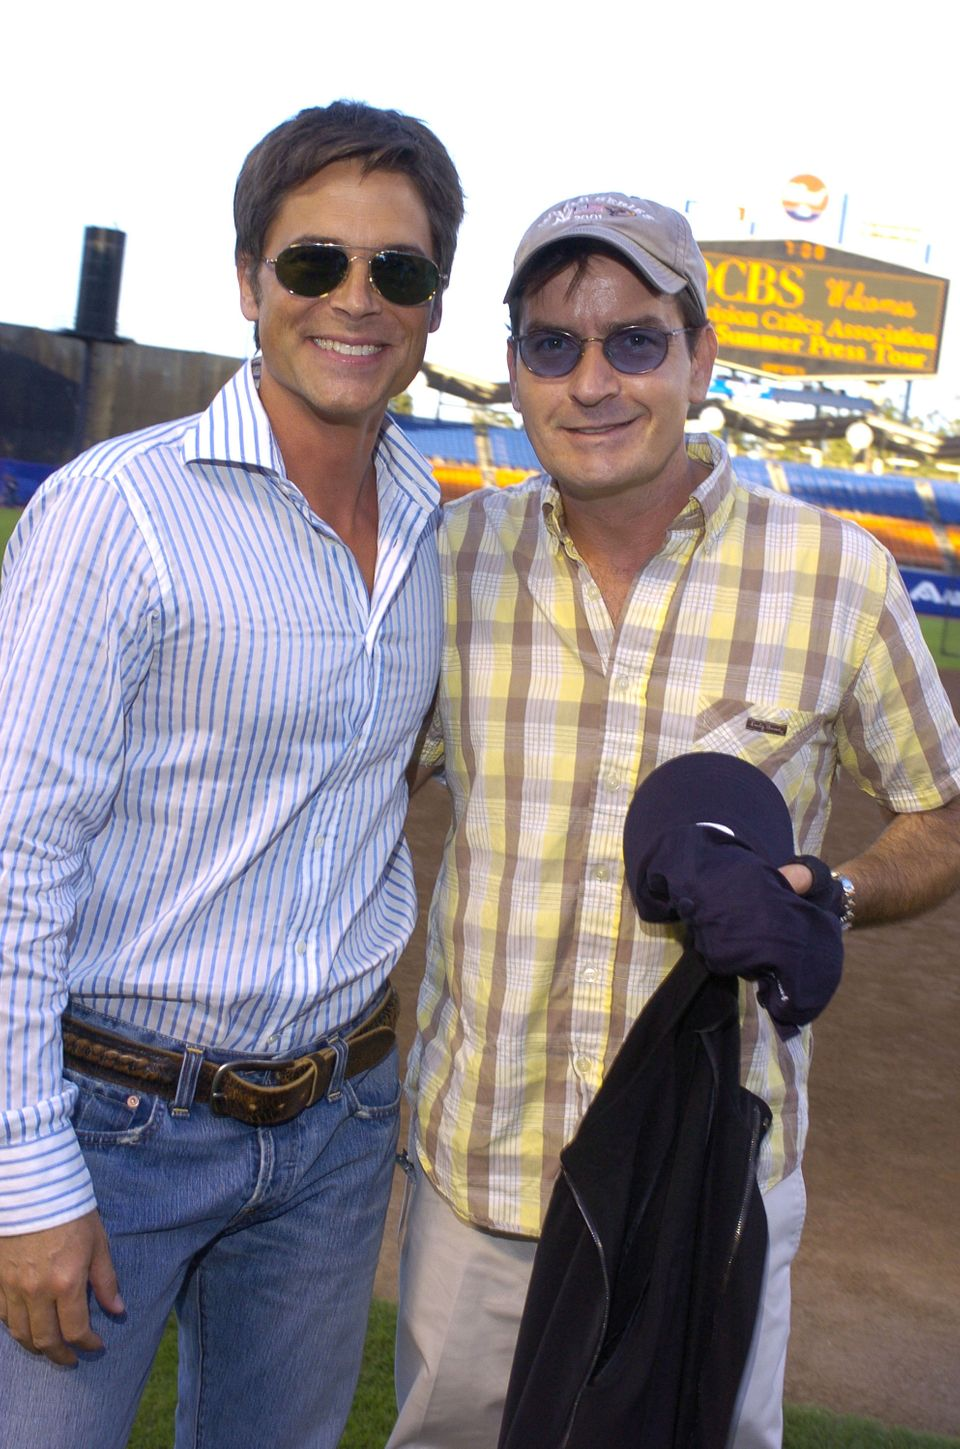 Charlie Sheen and Rob Lowe go way back. In fact, the two went to high school together alongside Emilio Estevez, Sean Penn, Ch